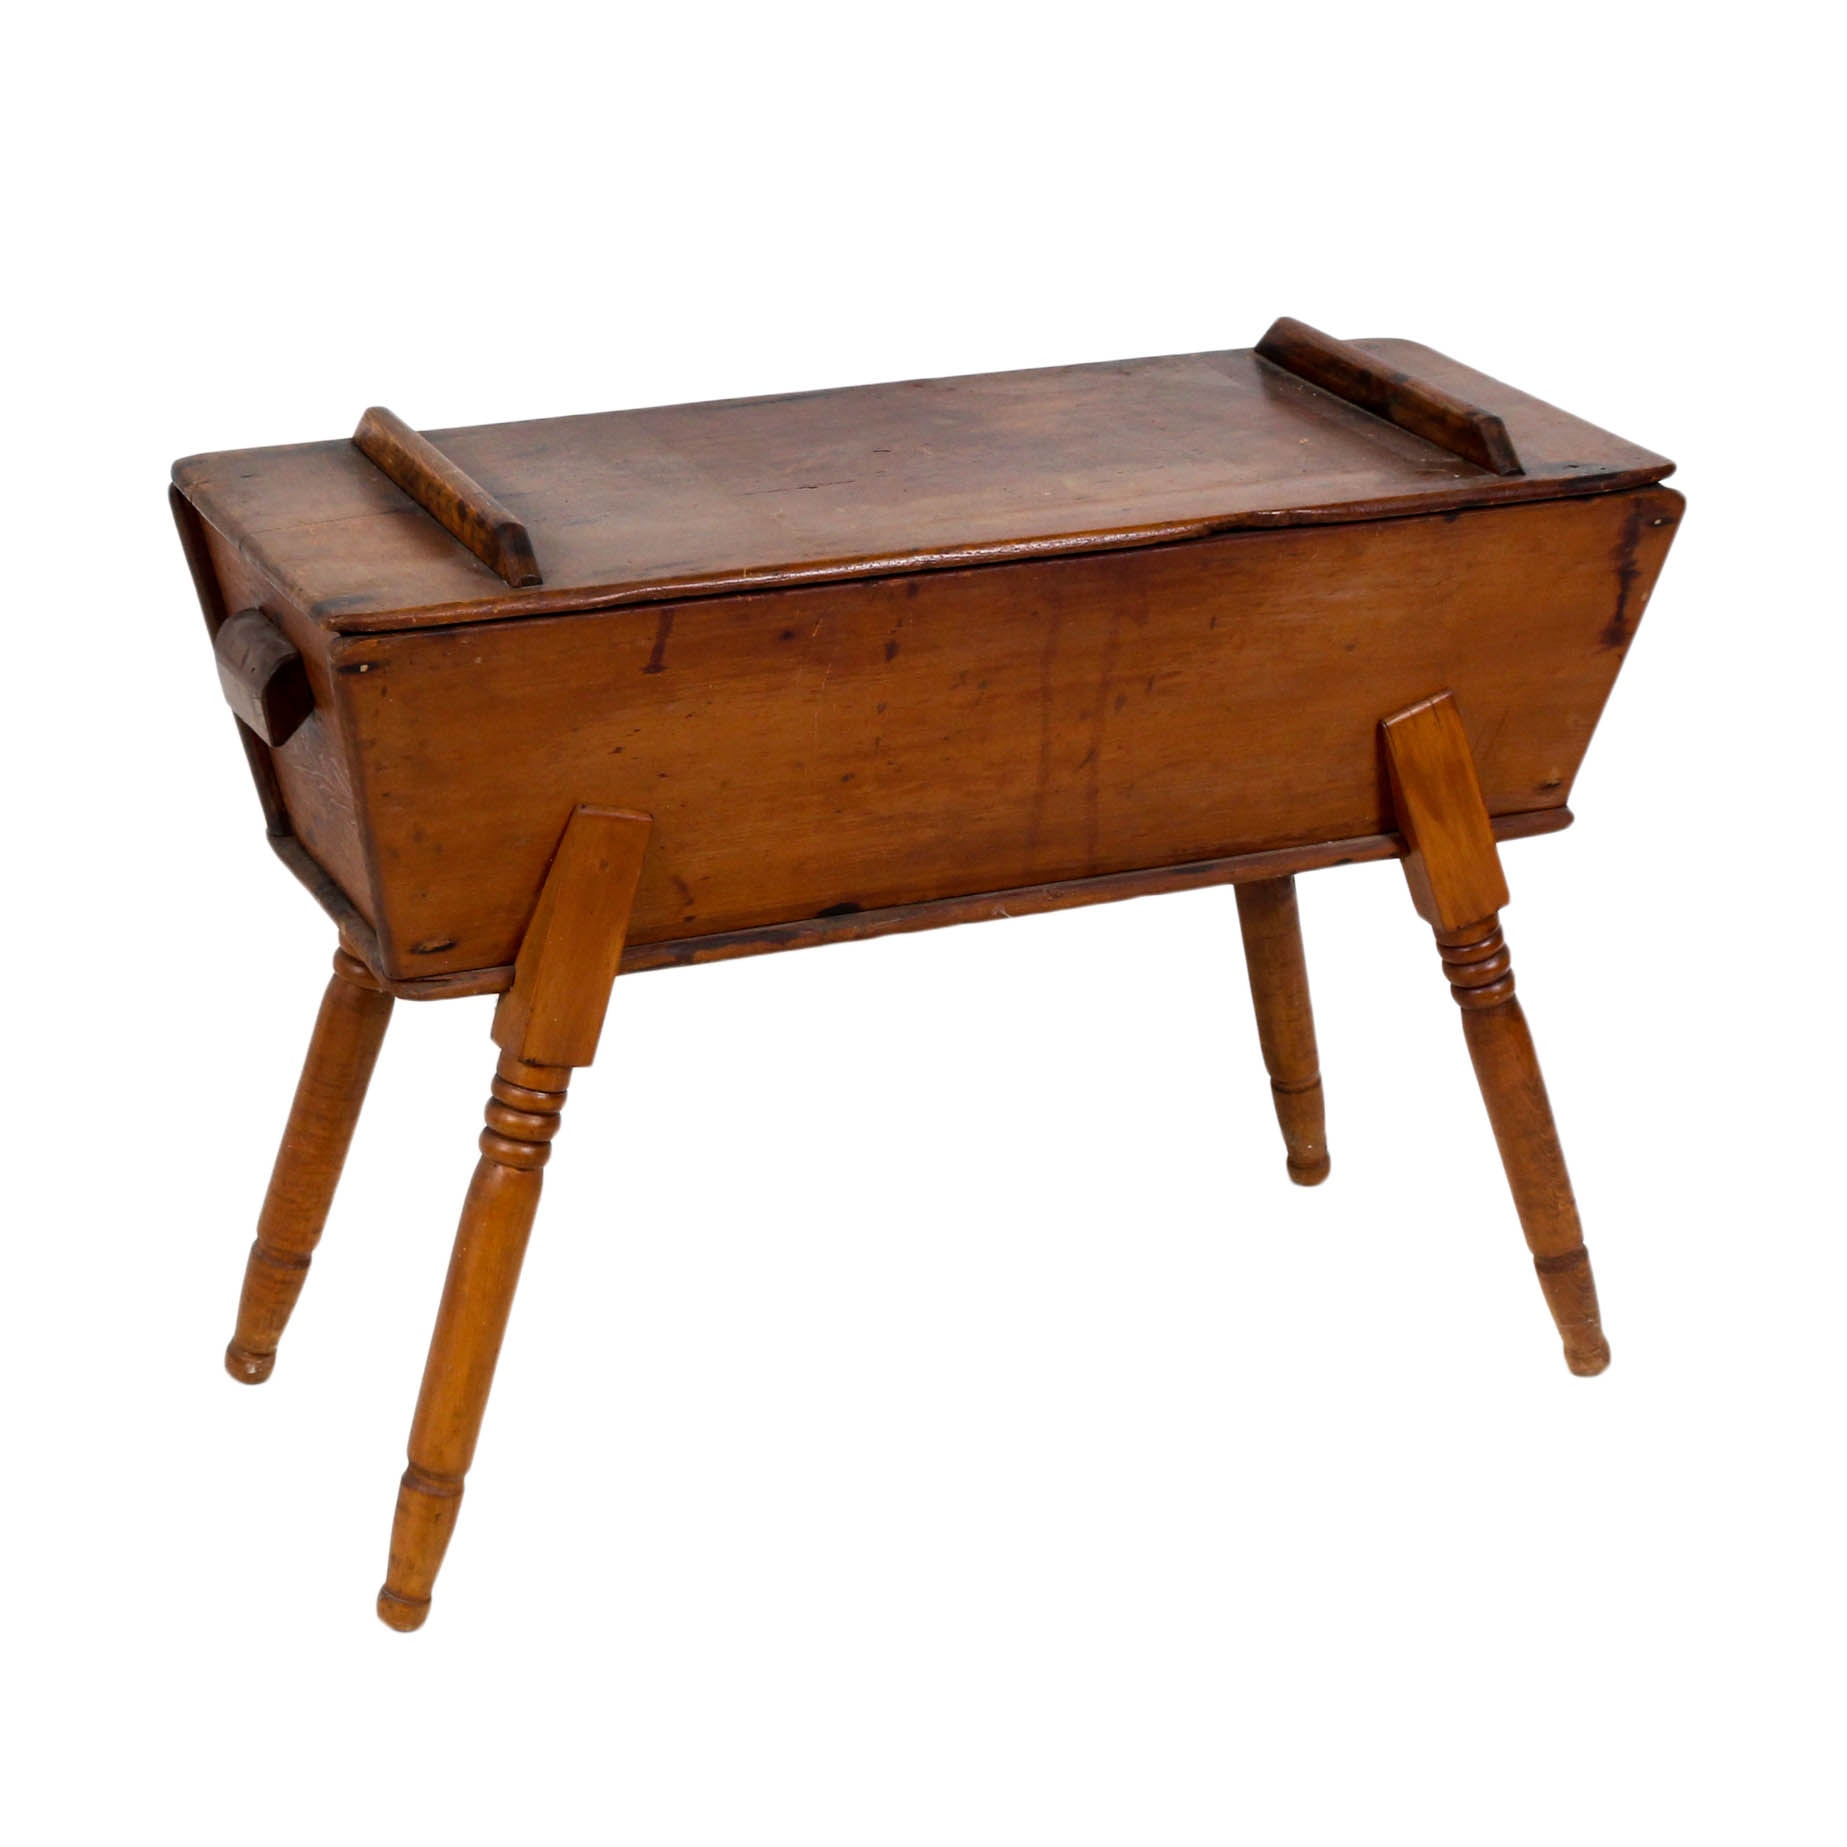 American Pine Dough Box with Lid, Early to Mid-19th Century